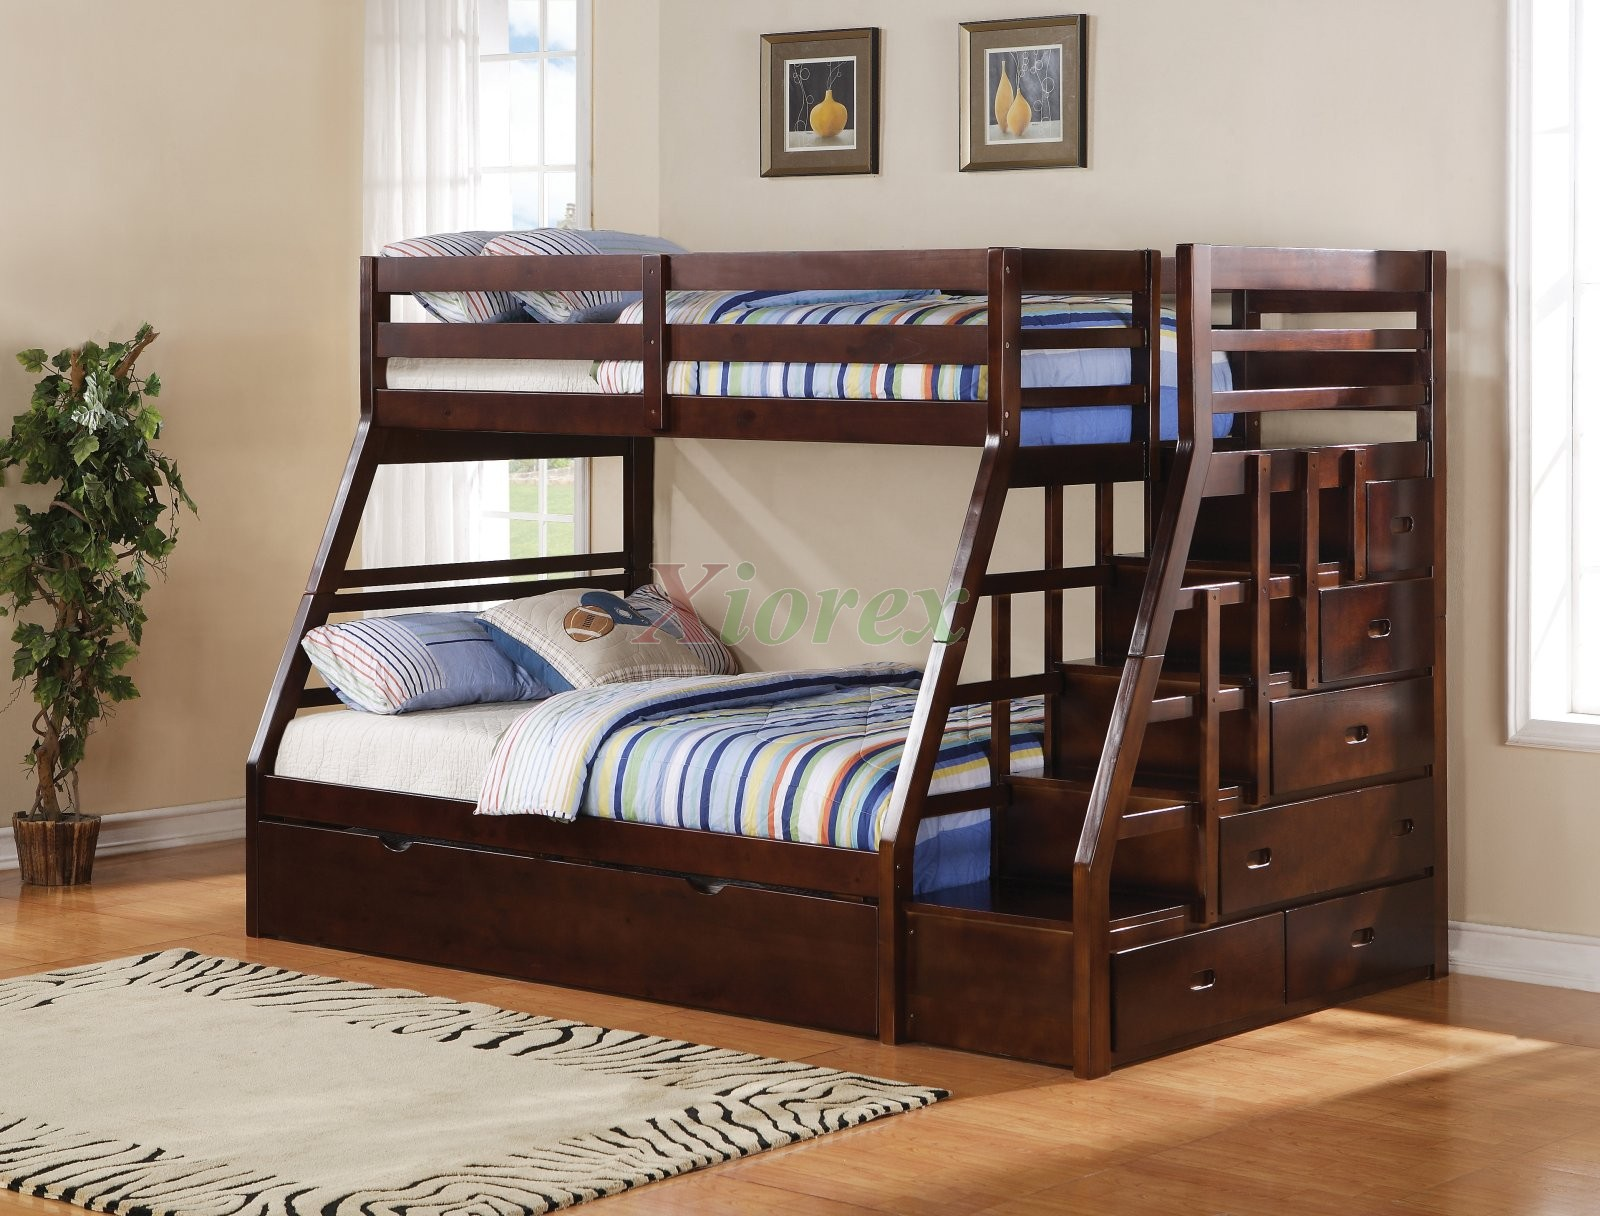 Taurus TwinFull Bunk Bed With Stairs And Trundle In Espresso Xiorex - Kids bedroom furniture calgary